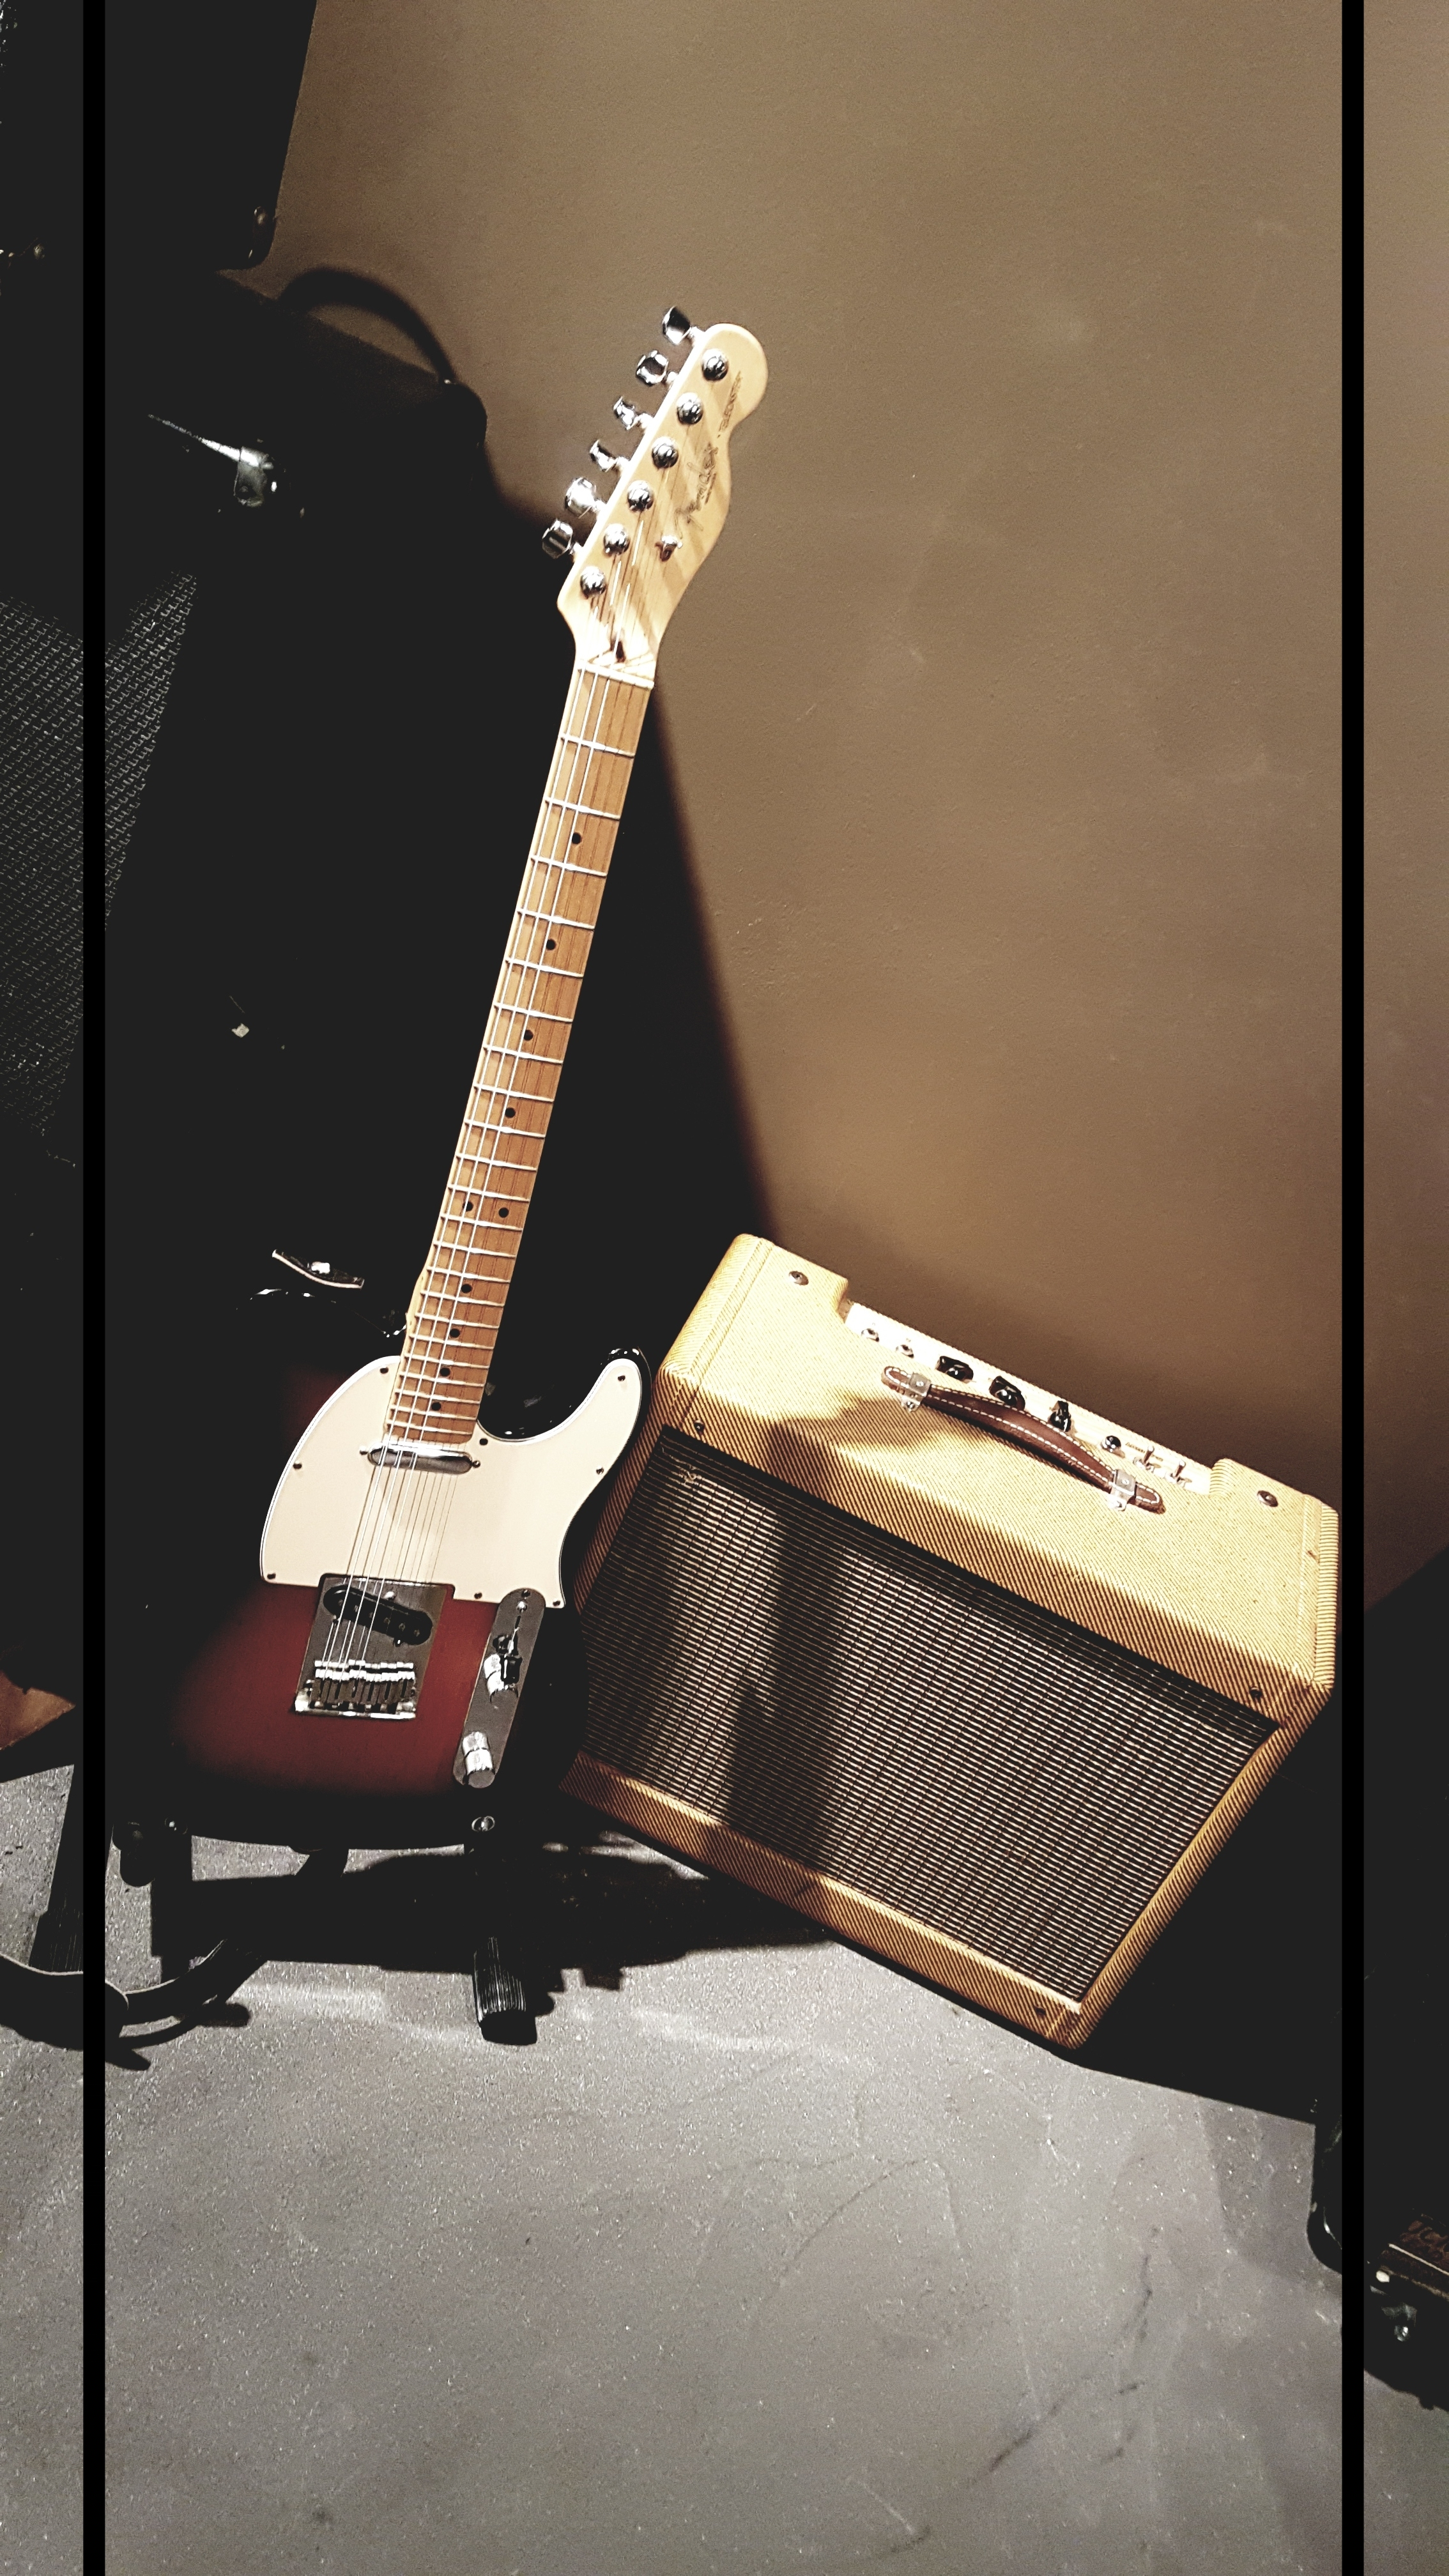 An old stock, handmade, point-to-point repro 5E3 Deluxe and American Standard Telecaster